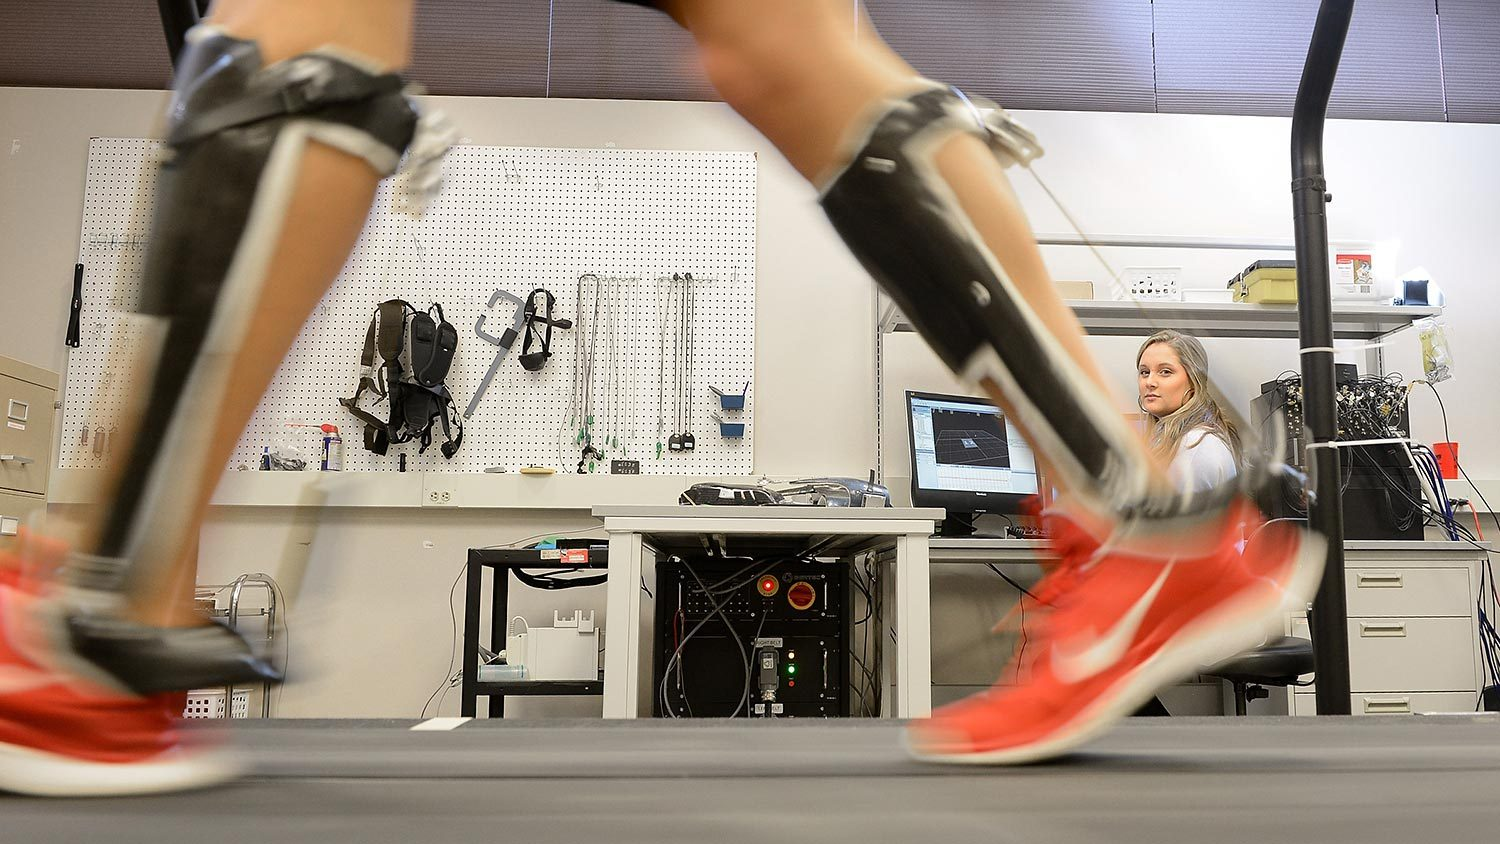 Researcher studies subject in the gait lab